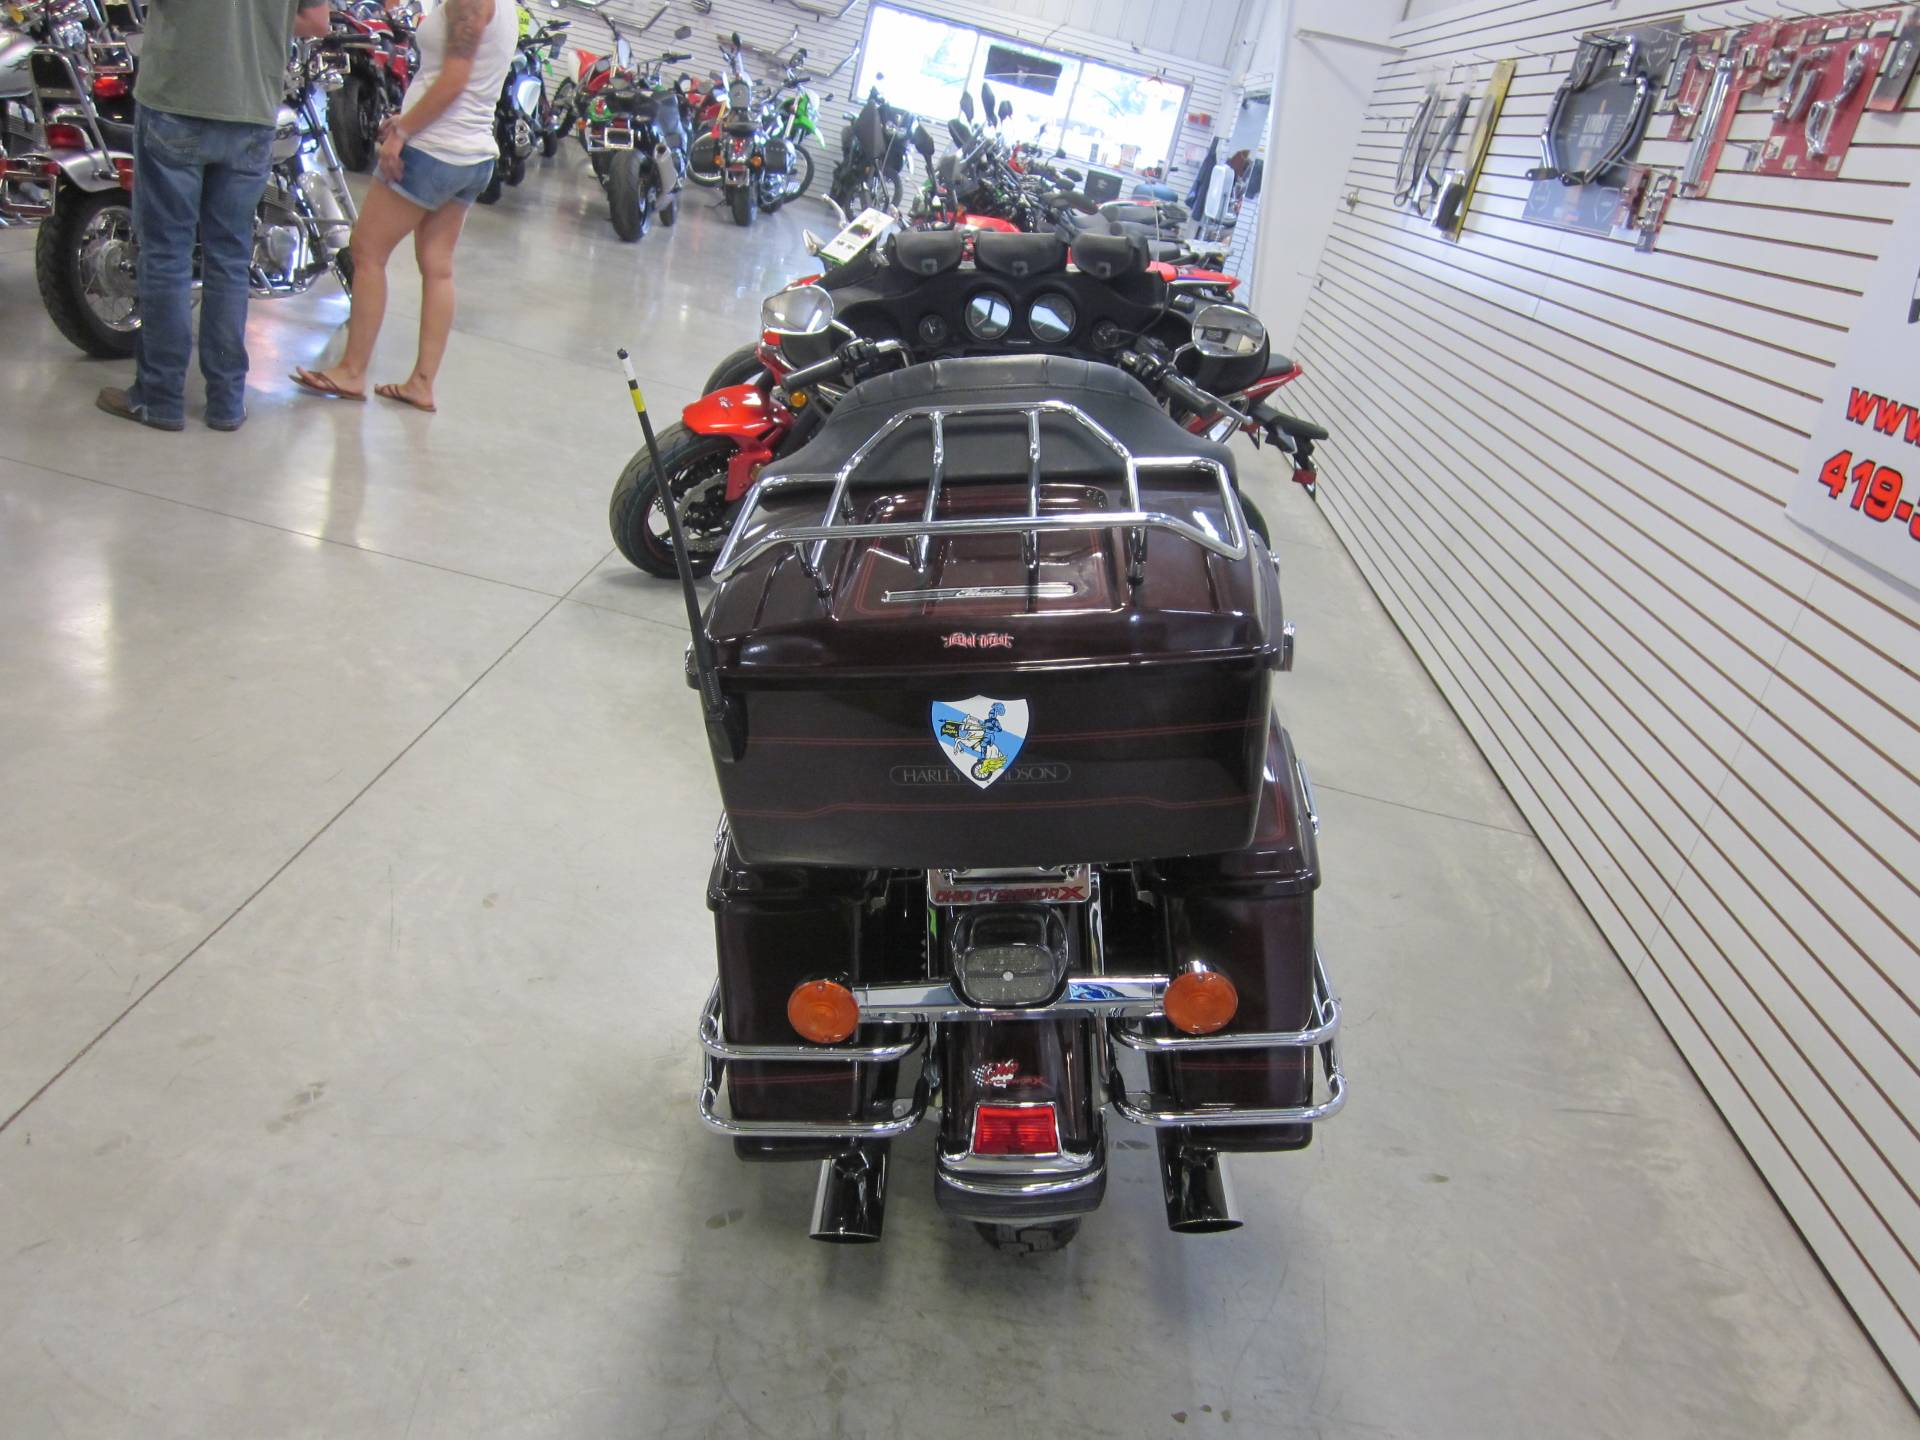 2005 Harley Davidson Ultra Glide Classic in Lima, Ohio - Photo 10